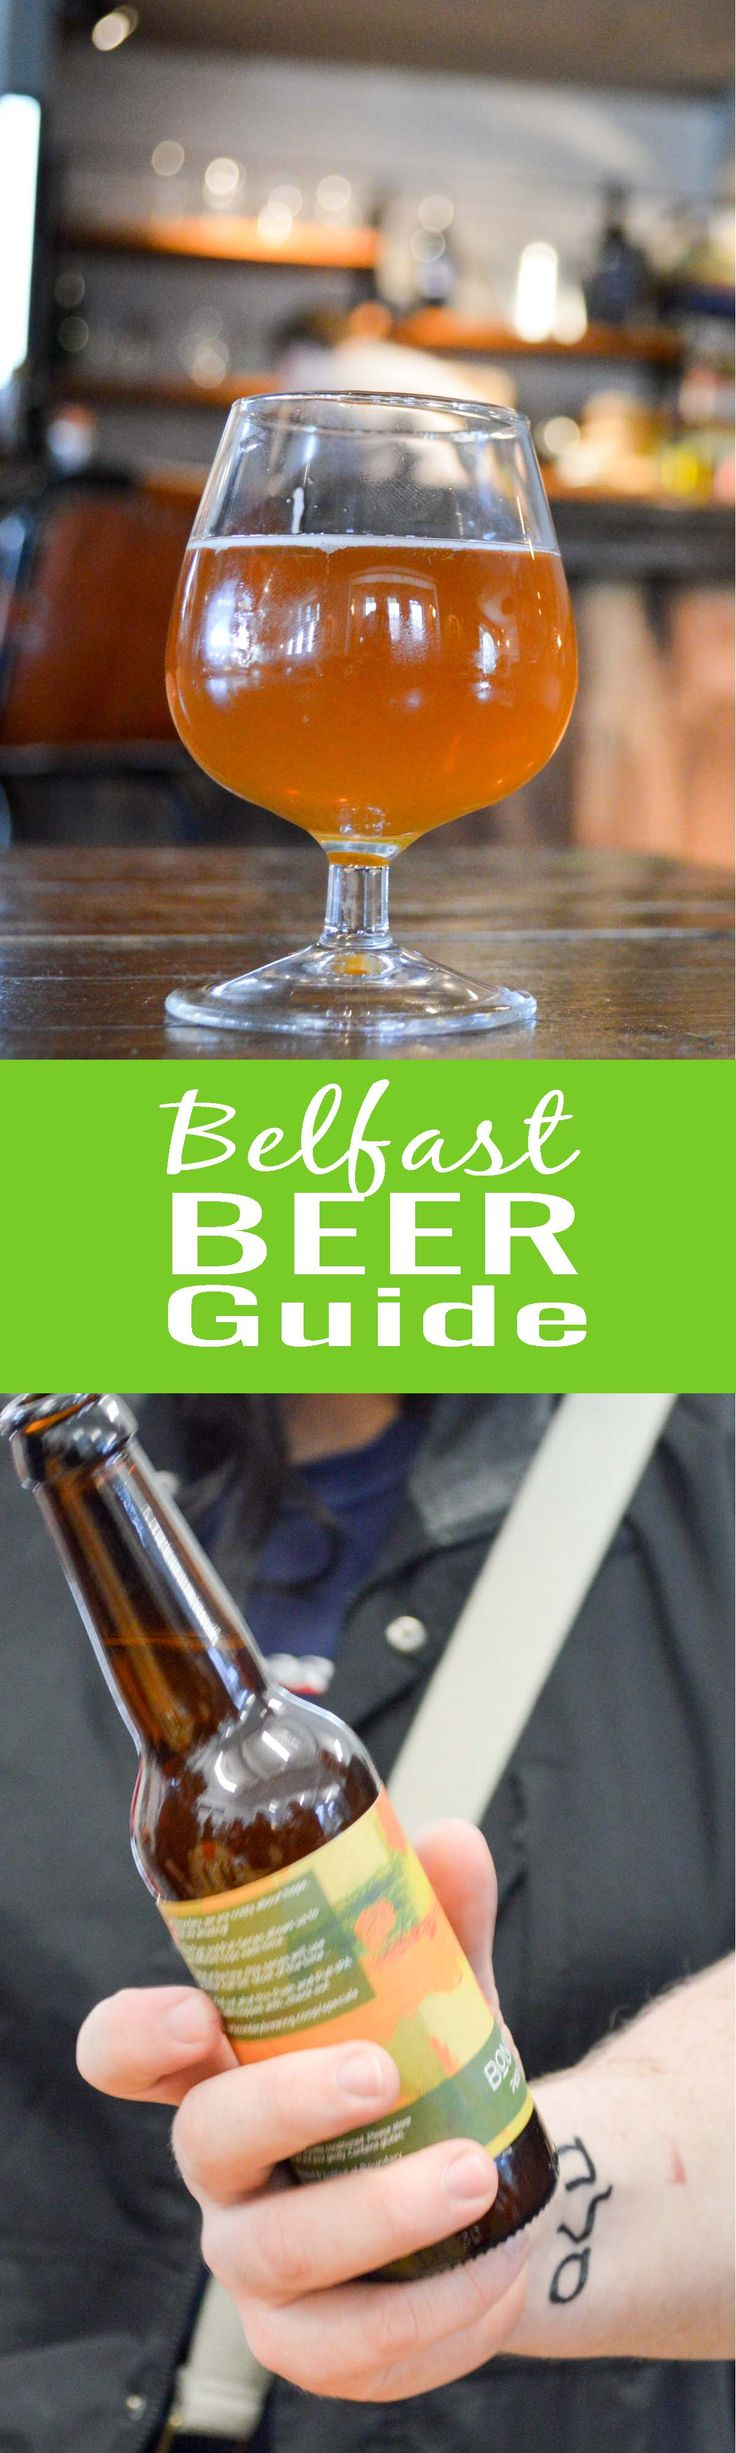 Belfast Beer Guide – This isn't a Belfast pub guide, but a Belfast beer guide, highlighting the best in Belfast's growing craft beer scene. Belfast is more than just Guinness and Harp!